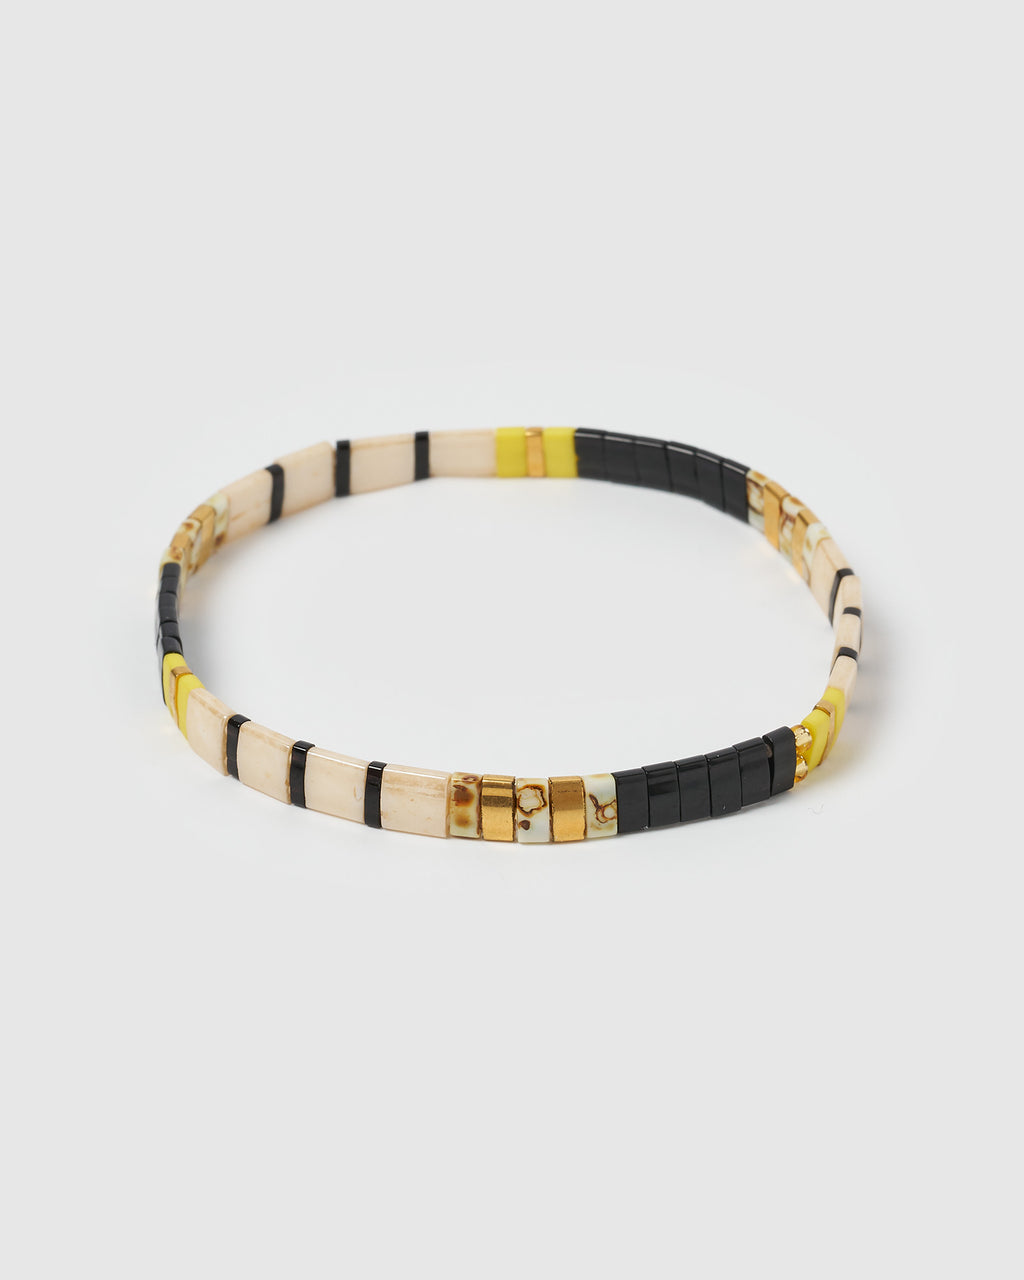 Izoa Angeline Beaded Bracelet Black Gold